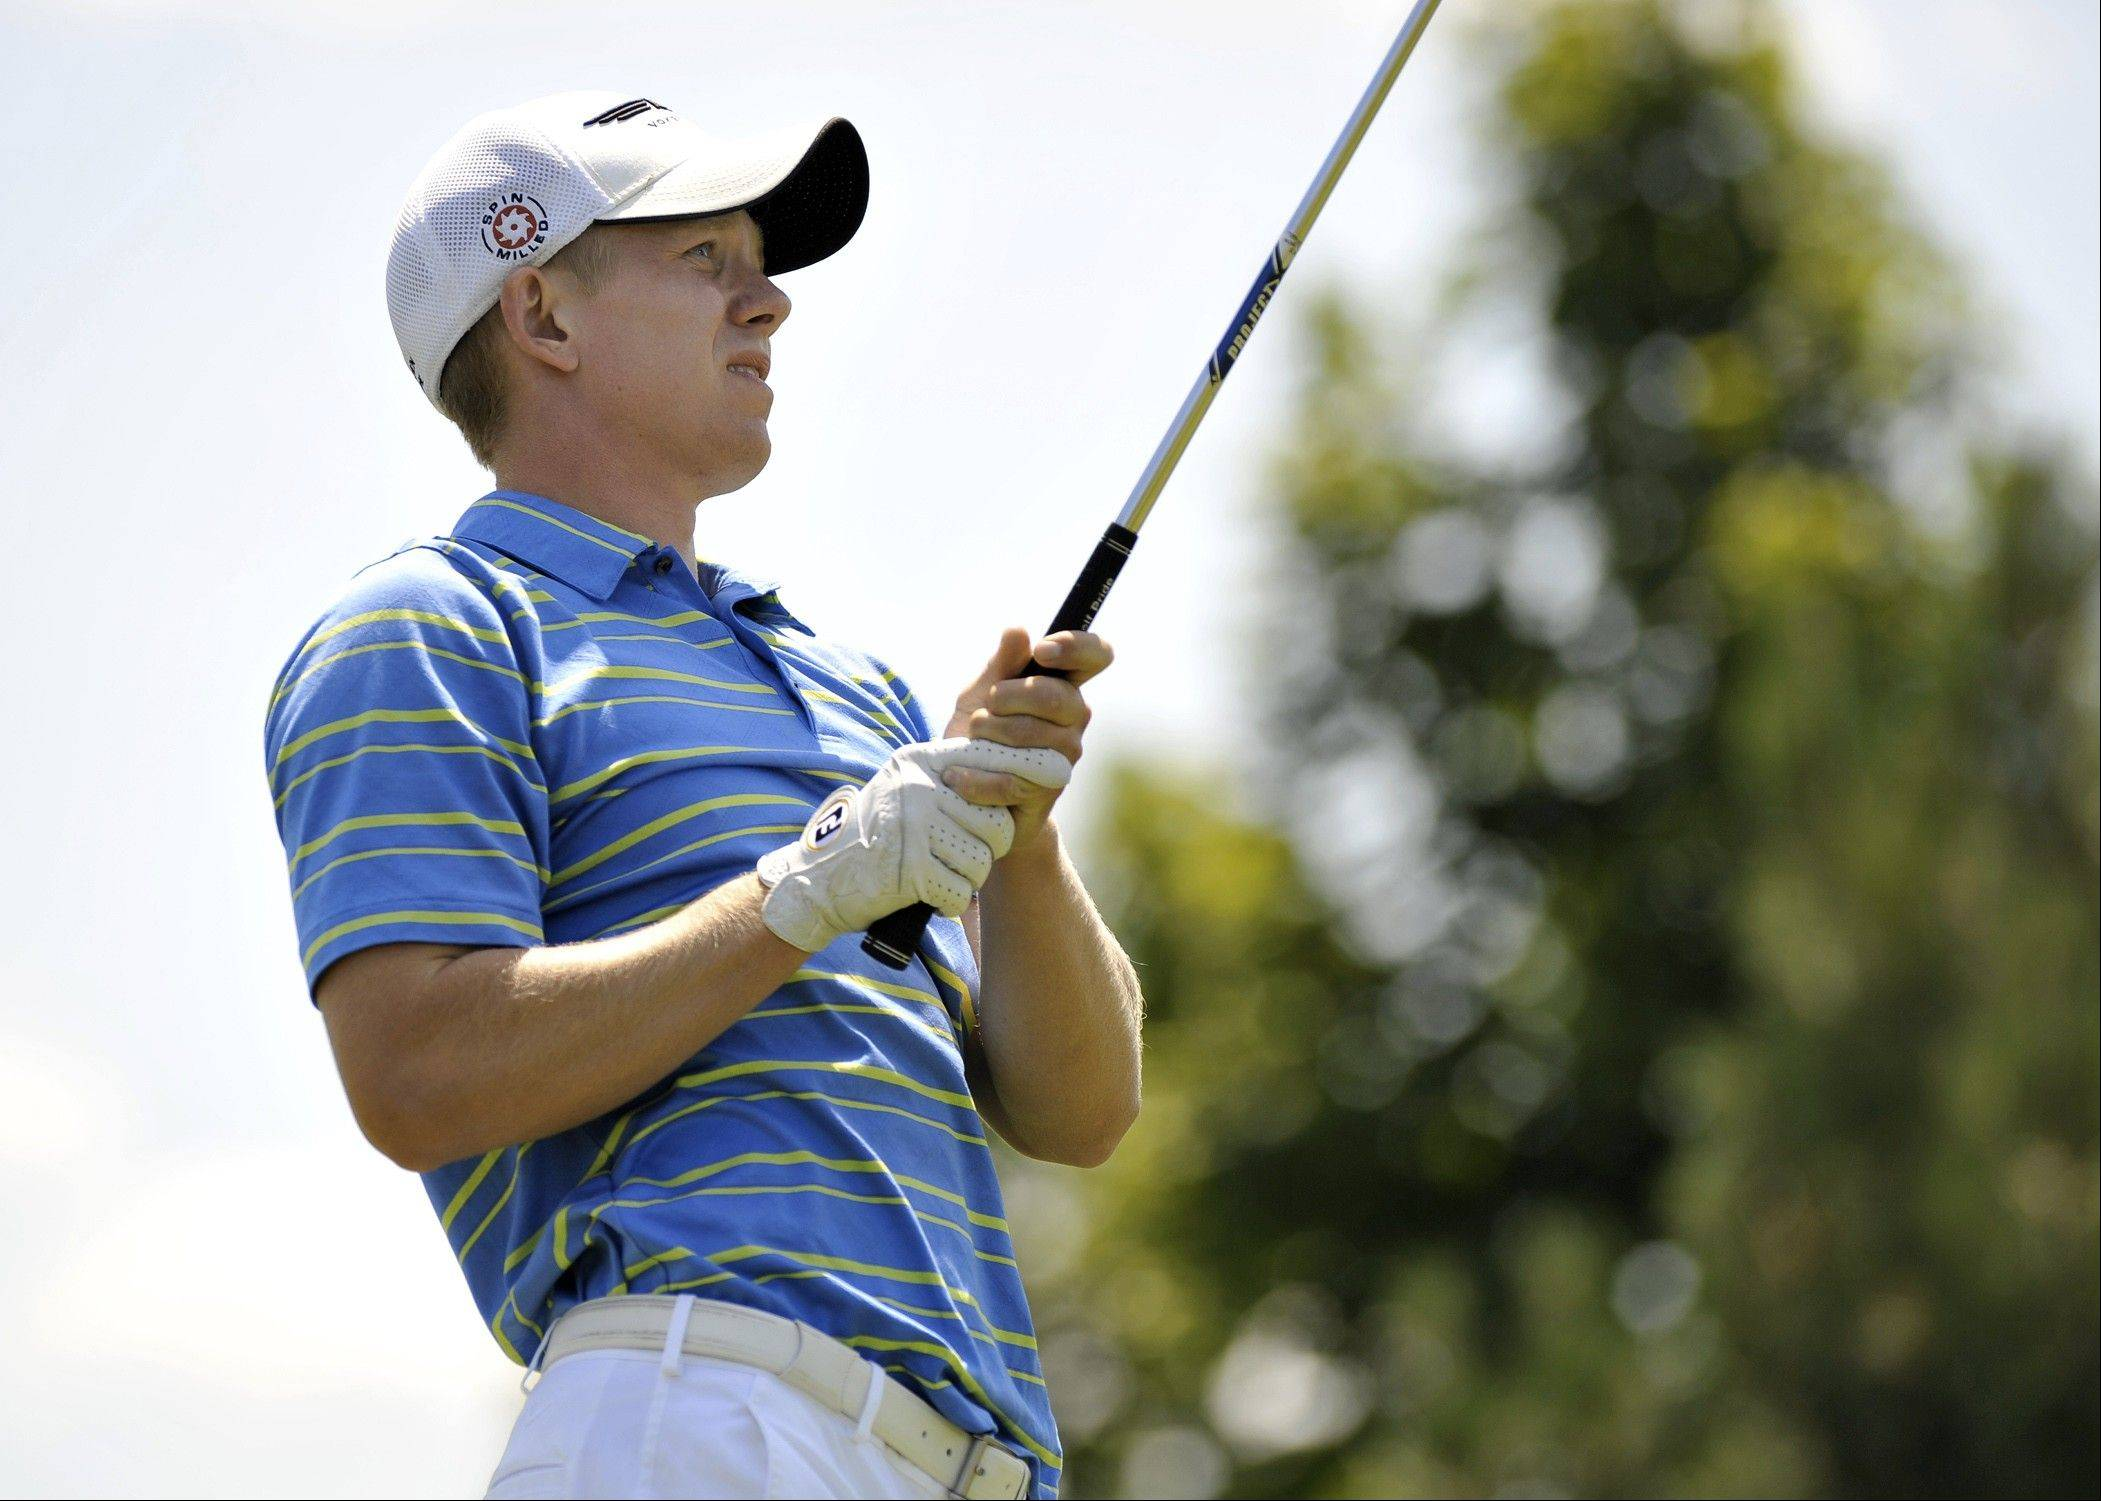 Rockford's Brad Benjamin, the 2009 U.S. Amateur Public Links titlist, is among the hopefuls for this week's Illinois Amateur tournament at Glen Oak Country Club in Glen Ellyn.